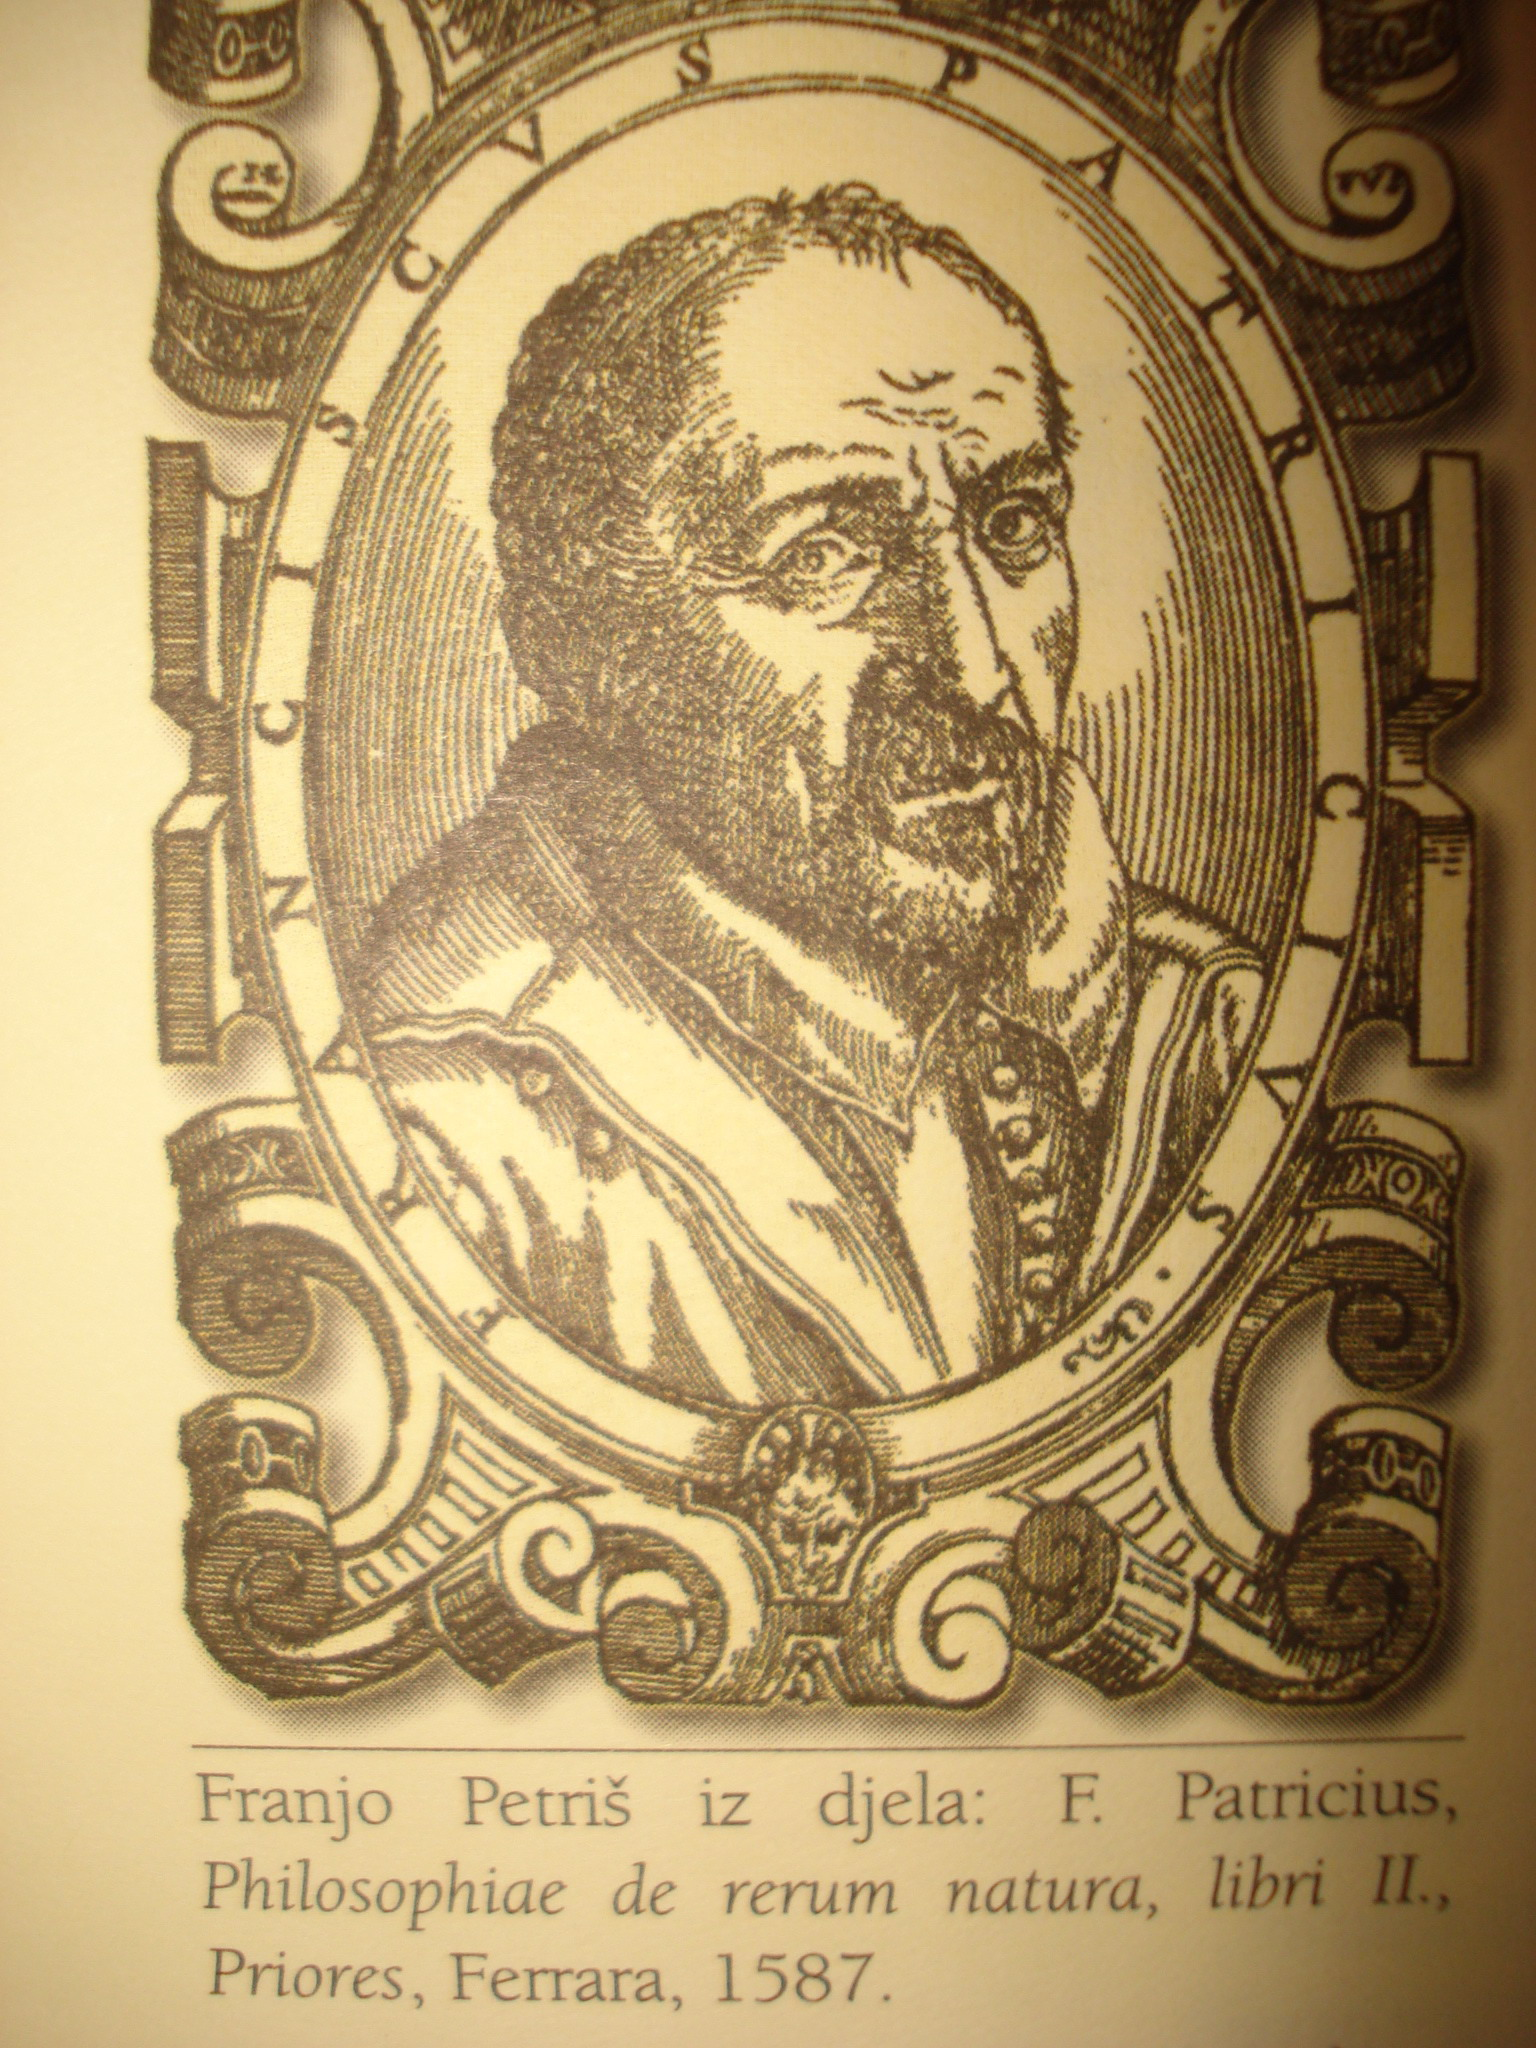 Portrait of Franjo Petriš from his book ''Philosophiae de rerum natura'', vol. II, published in Ferrara in 1587